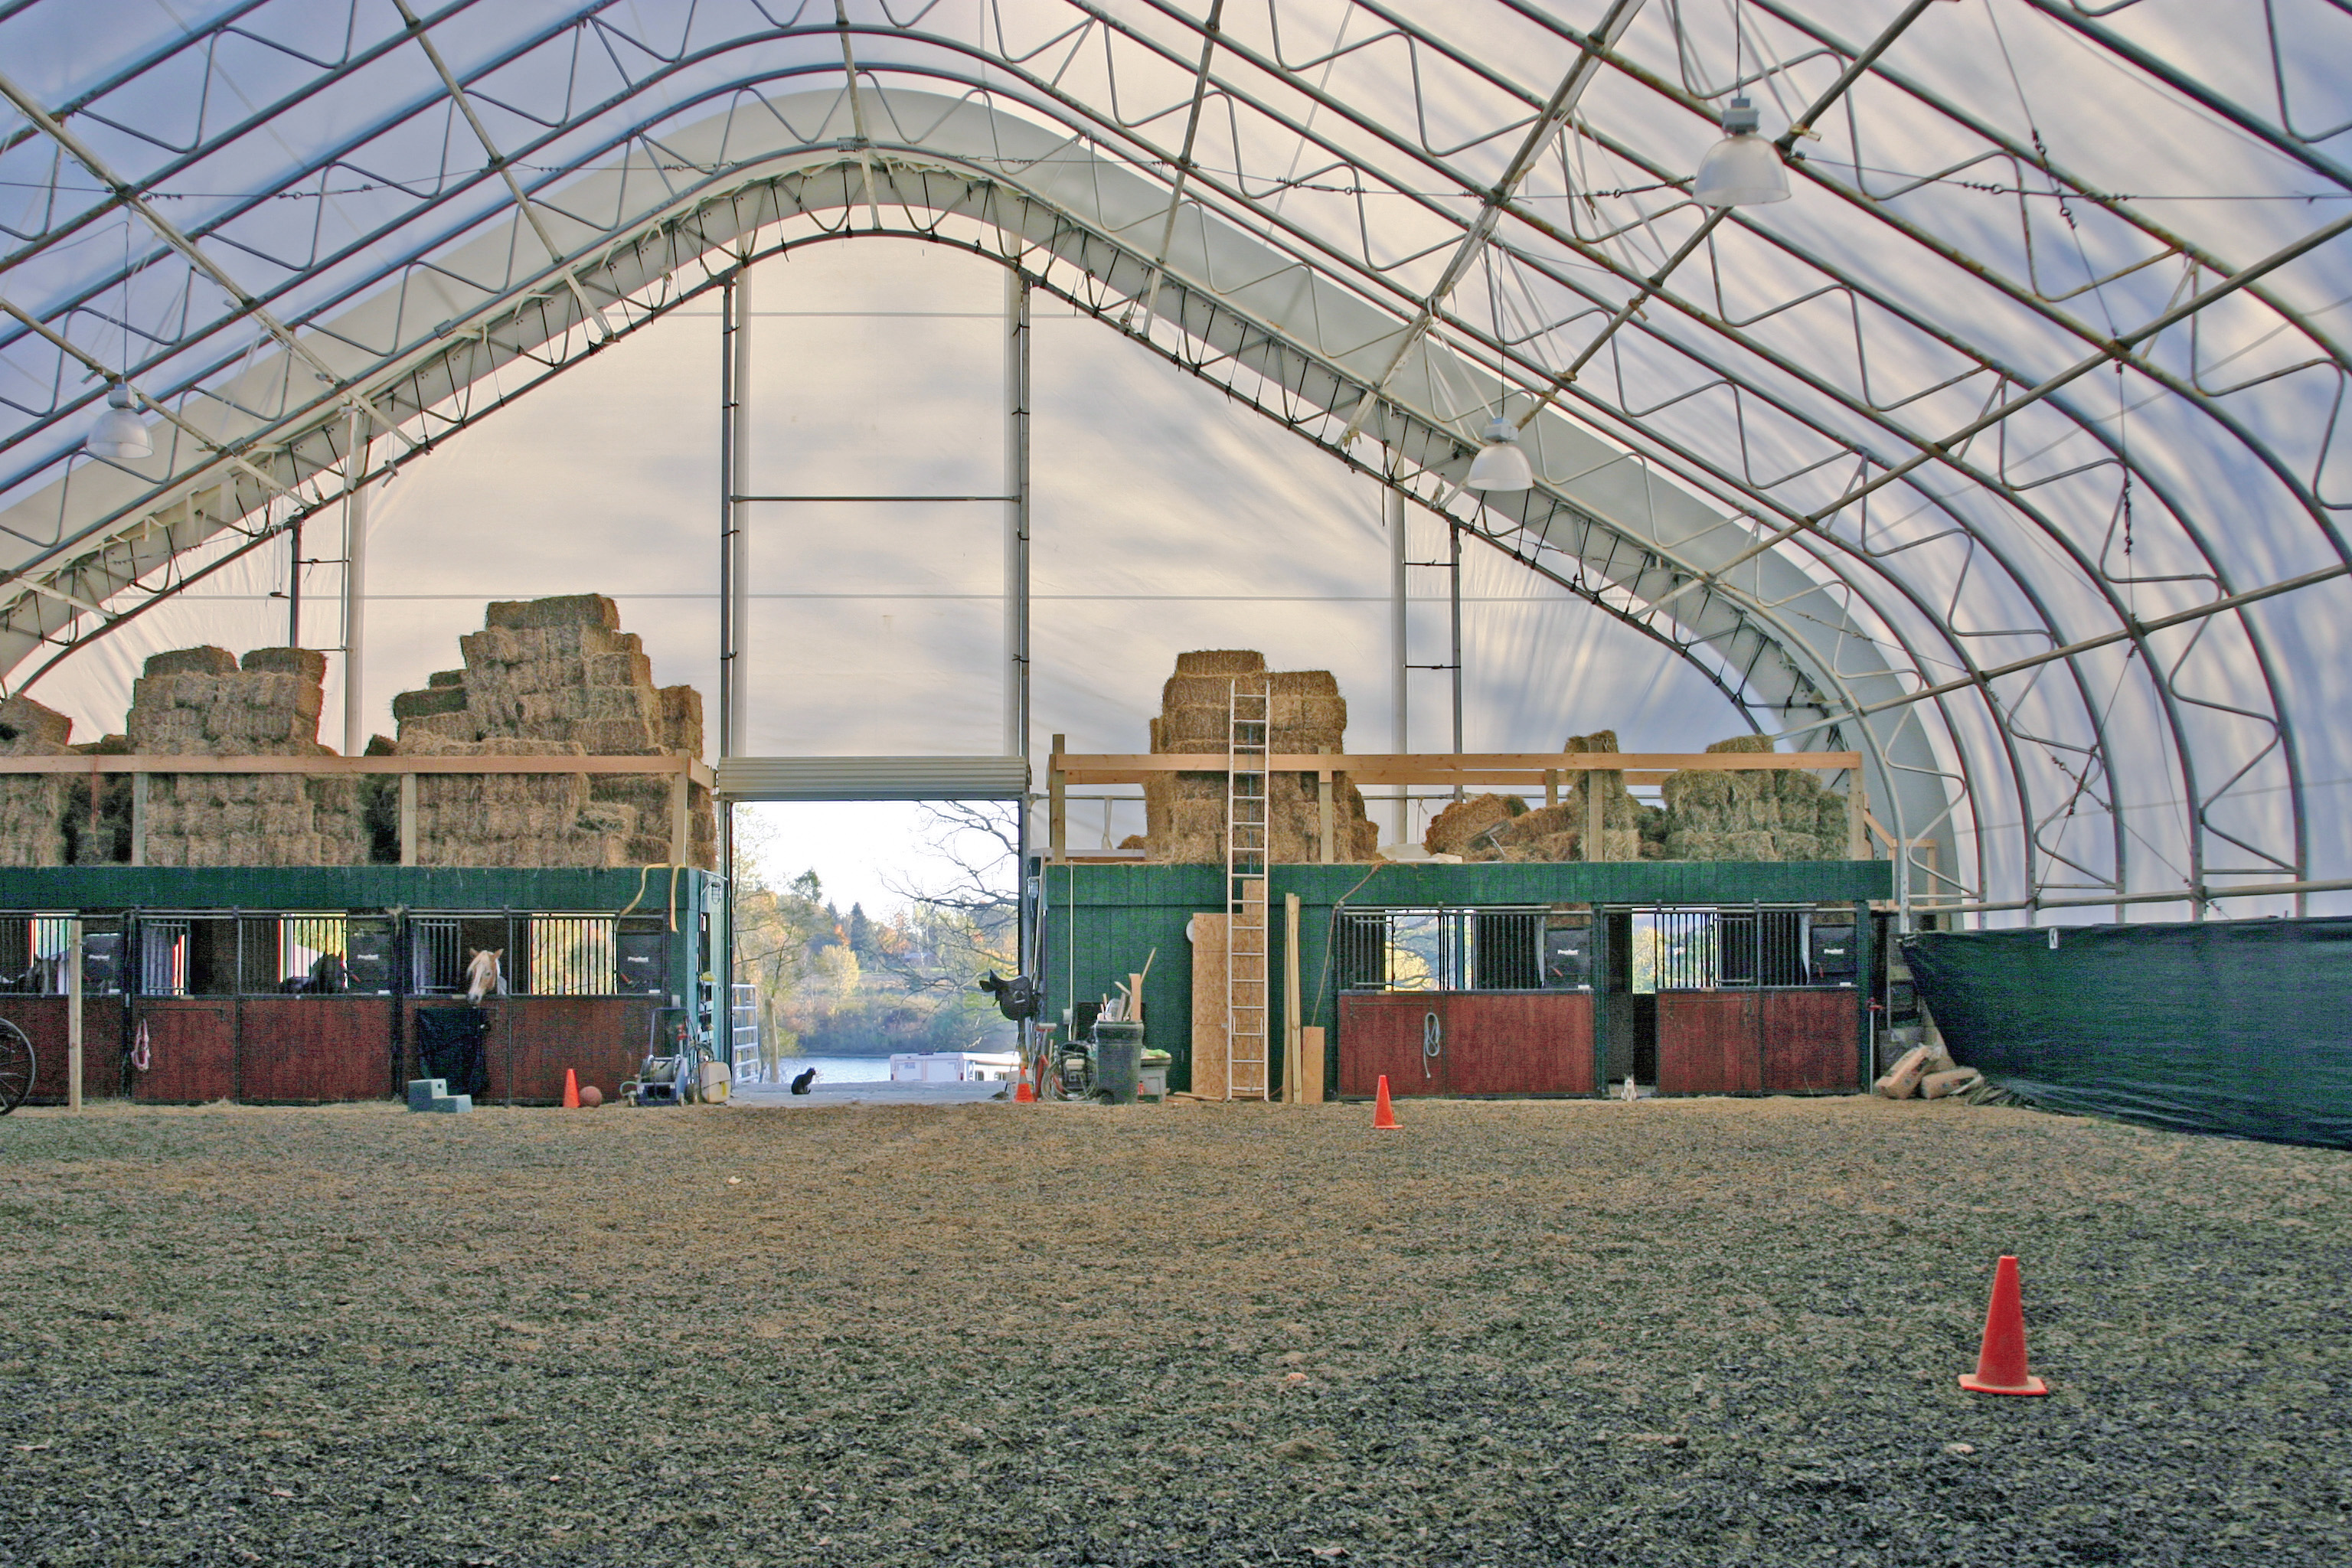 Spotlight on the Klodts and their Year-Round Arena